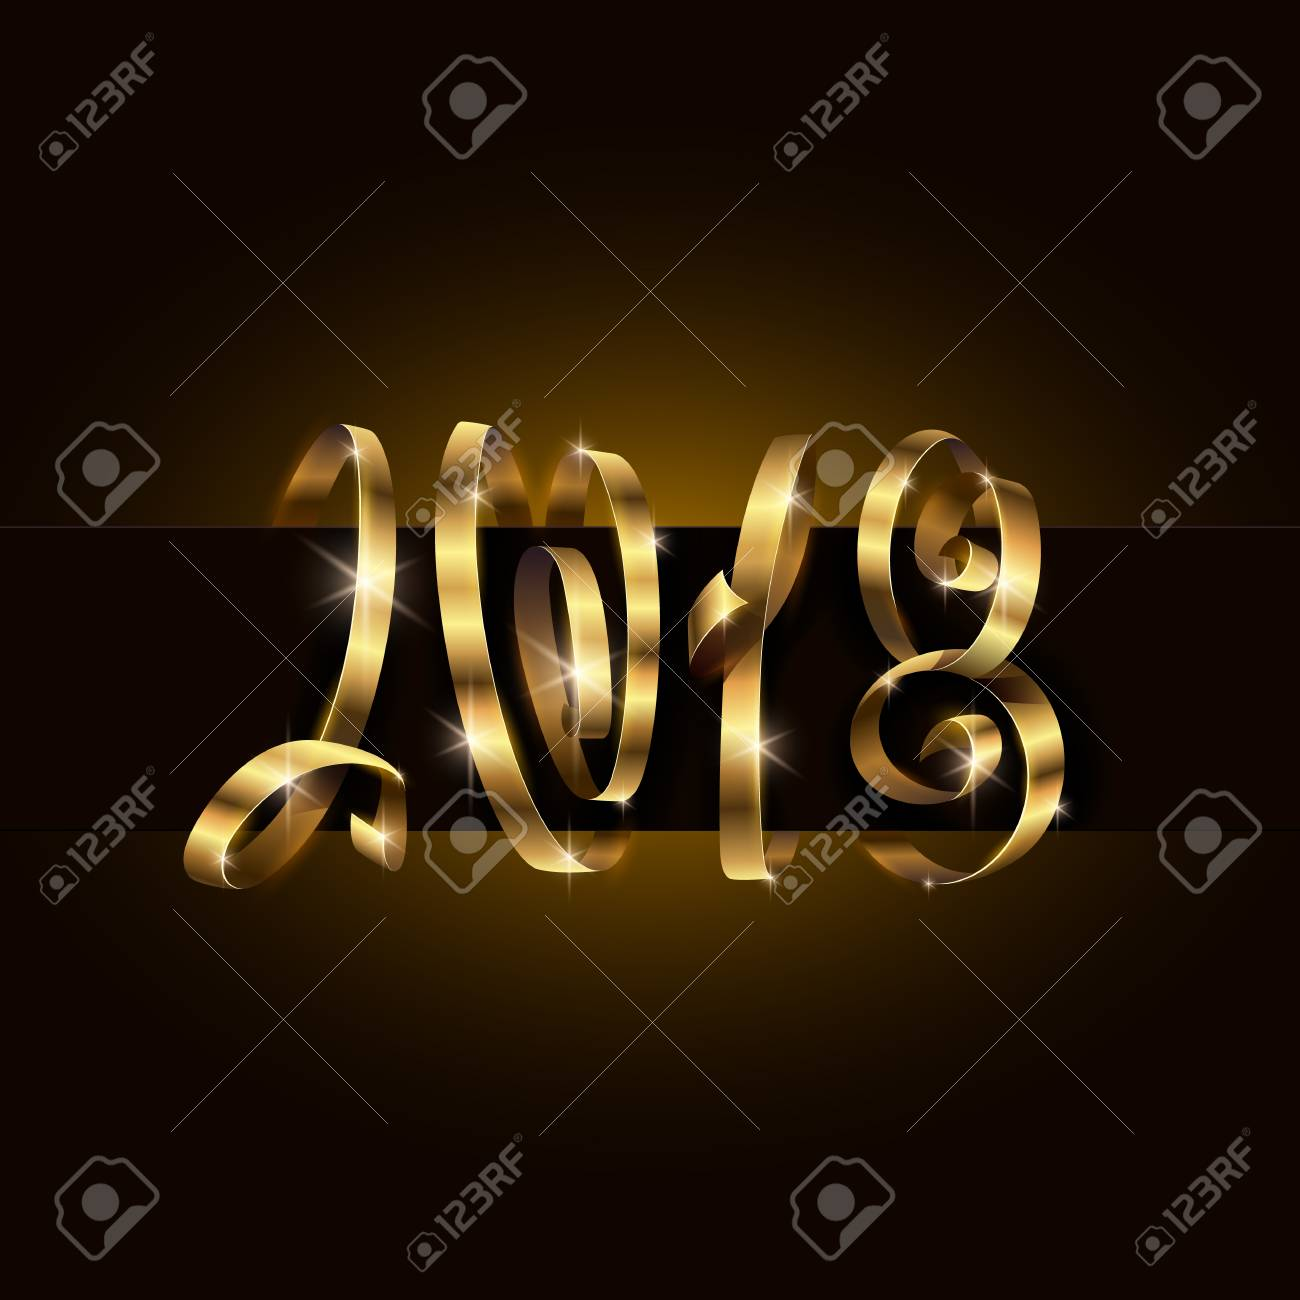 vector vector 2018 new year background 2018 lettering typography using golden gift ribbon or serpentine curls happy new year illustration for calendar